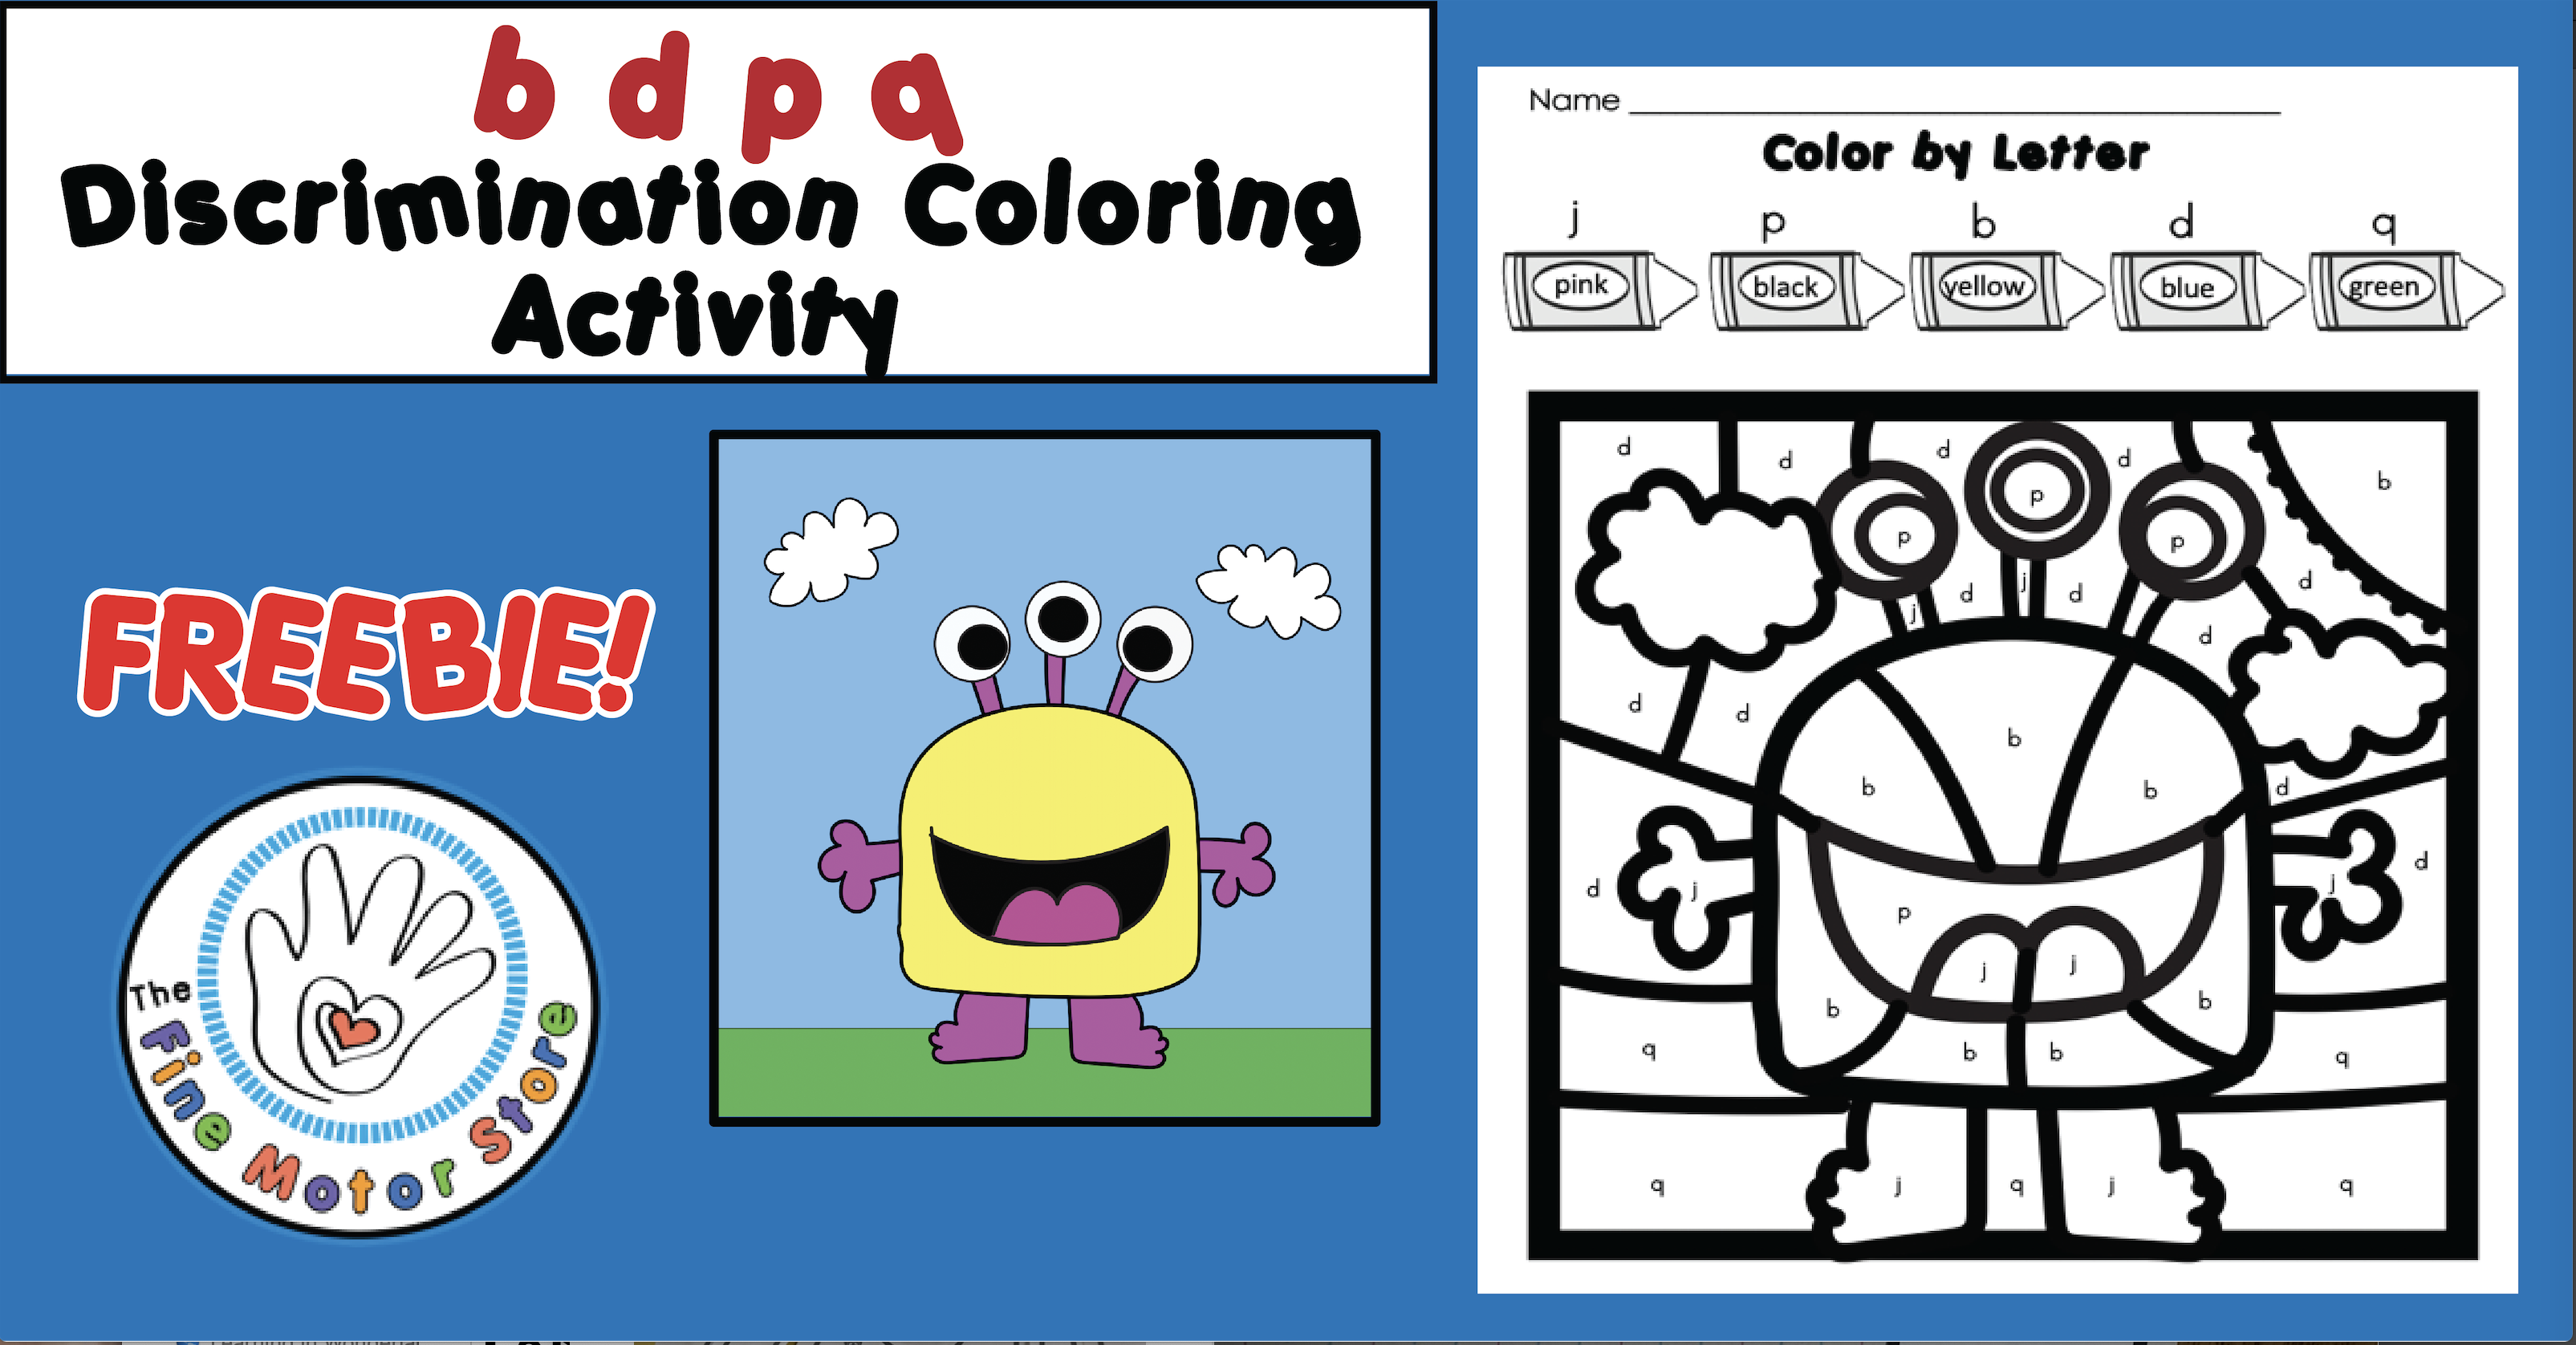 FREE b d p q Discrimination Coloring Activity to Help Letter Reversals